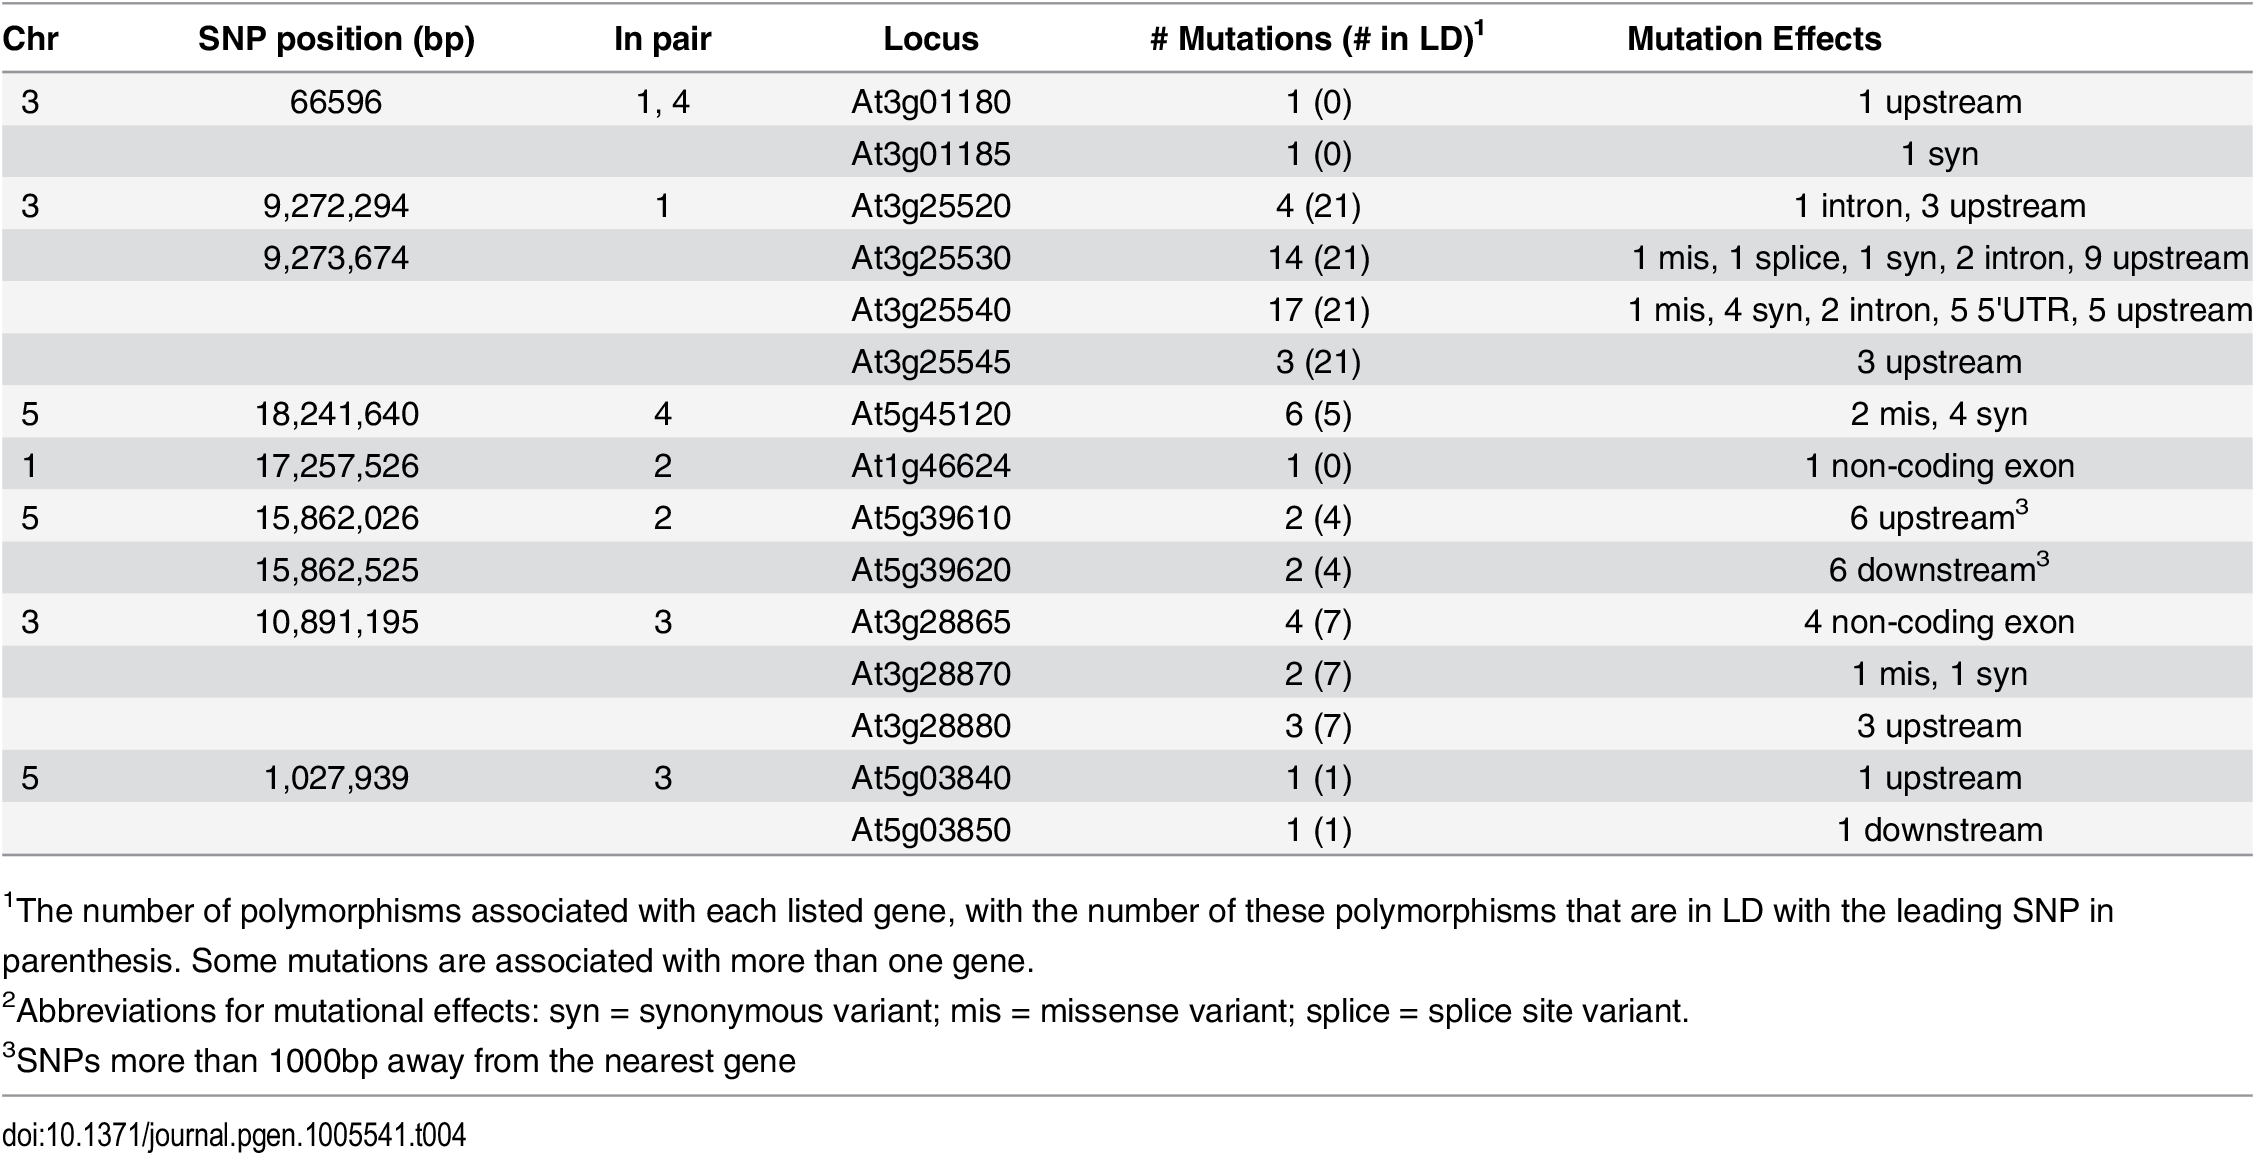 Summary of identified polymorphisms in LD with the leading SNPs from the epistatic GWA analysis.